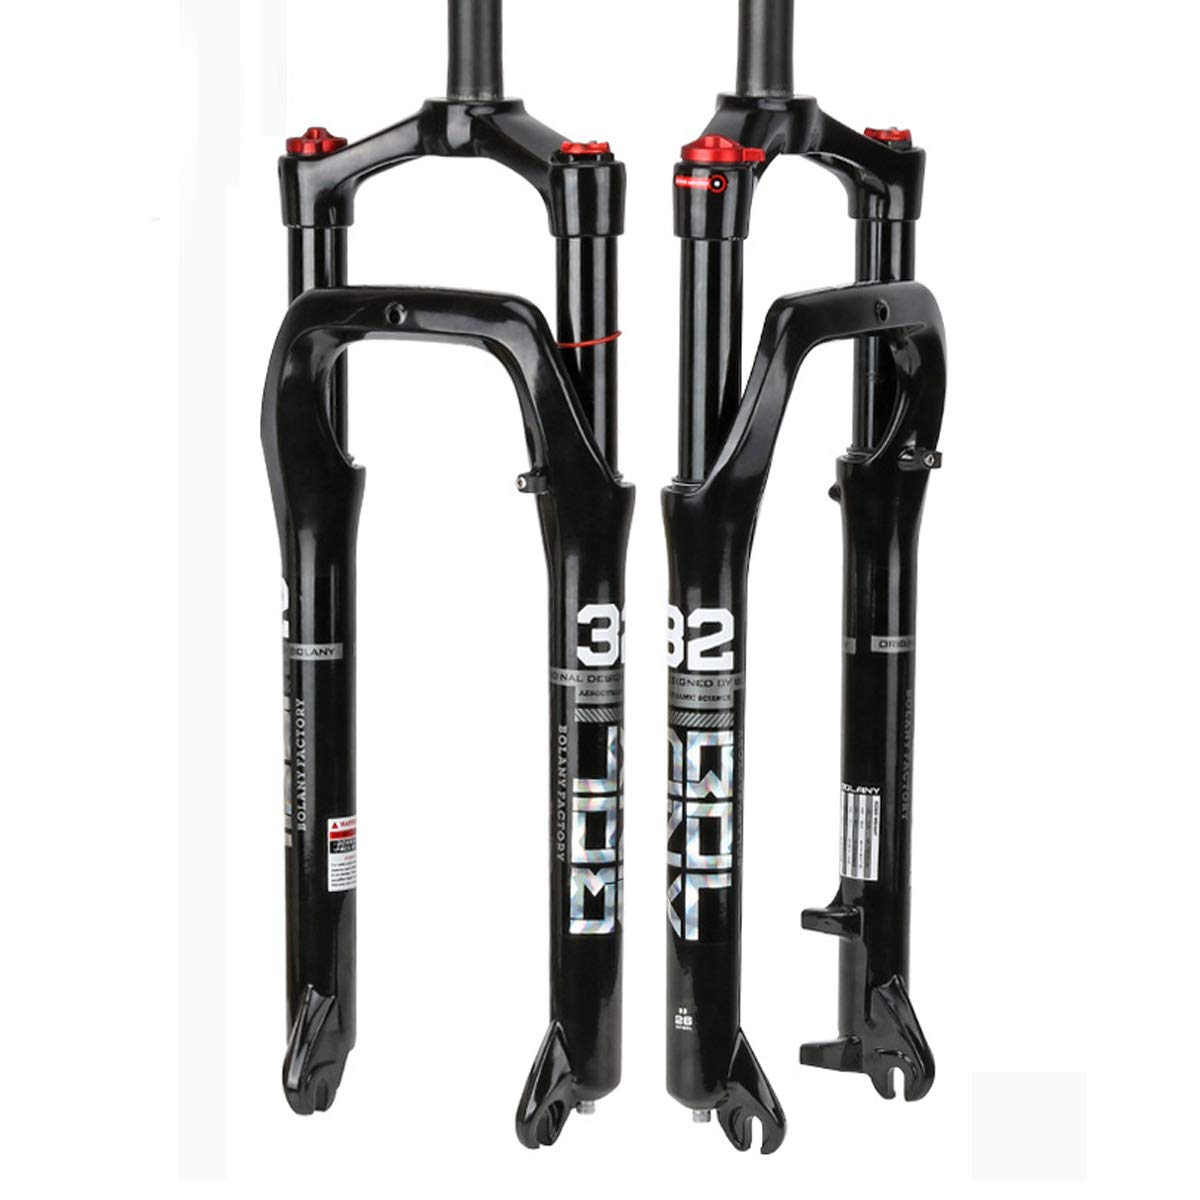 Bike Air Fat Fork- Snow Fat MTB Fork Travel 100MM Aluminum-Alloy Material Fit 4.0'' Tire Mountain Bike by GENERIC